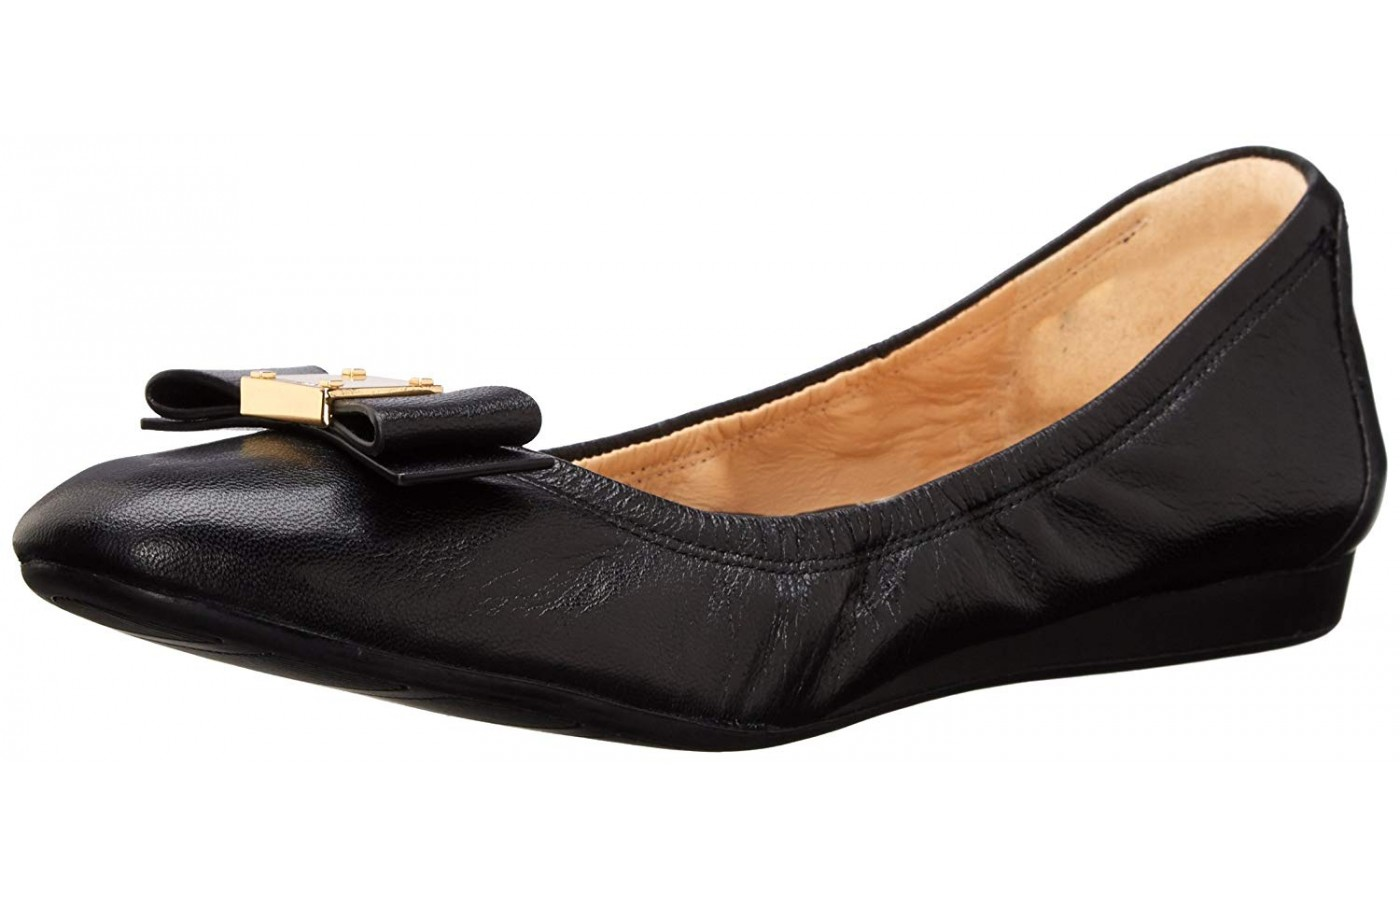 Cole Haan Tali Bow Angled View